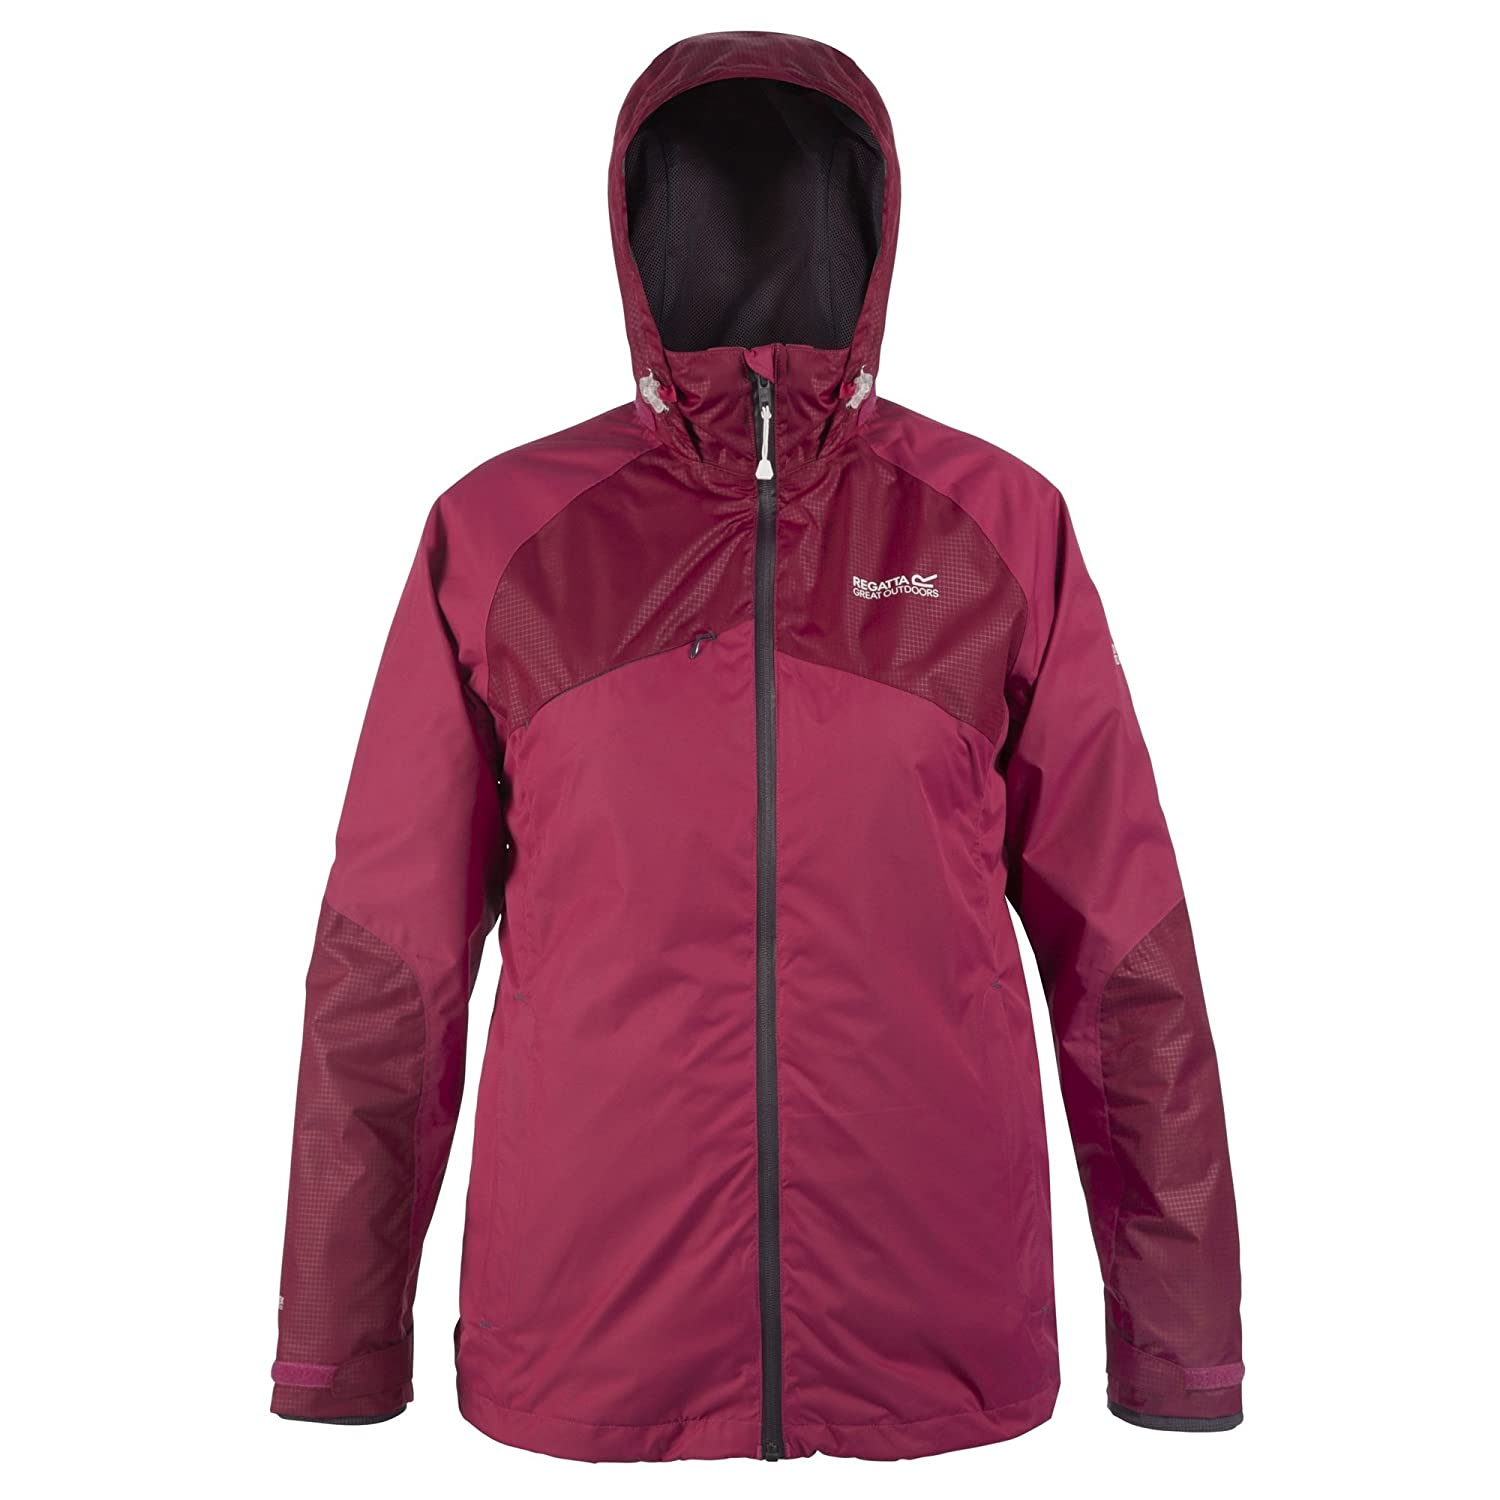 Regatta jacke 3 in 1 damen